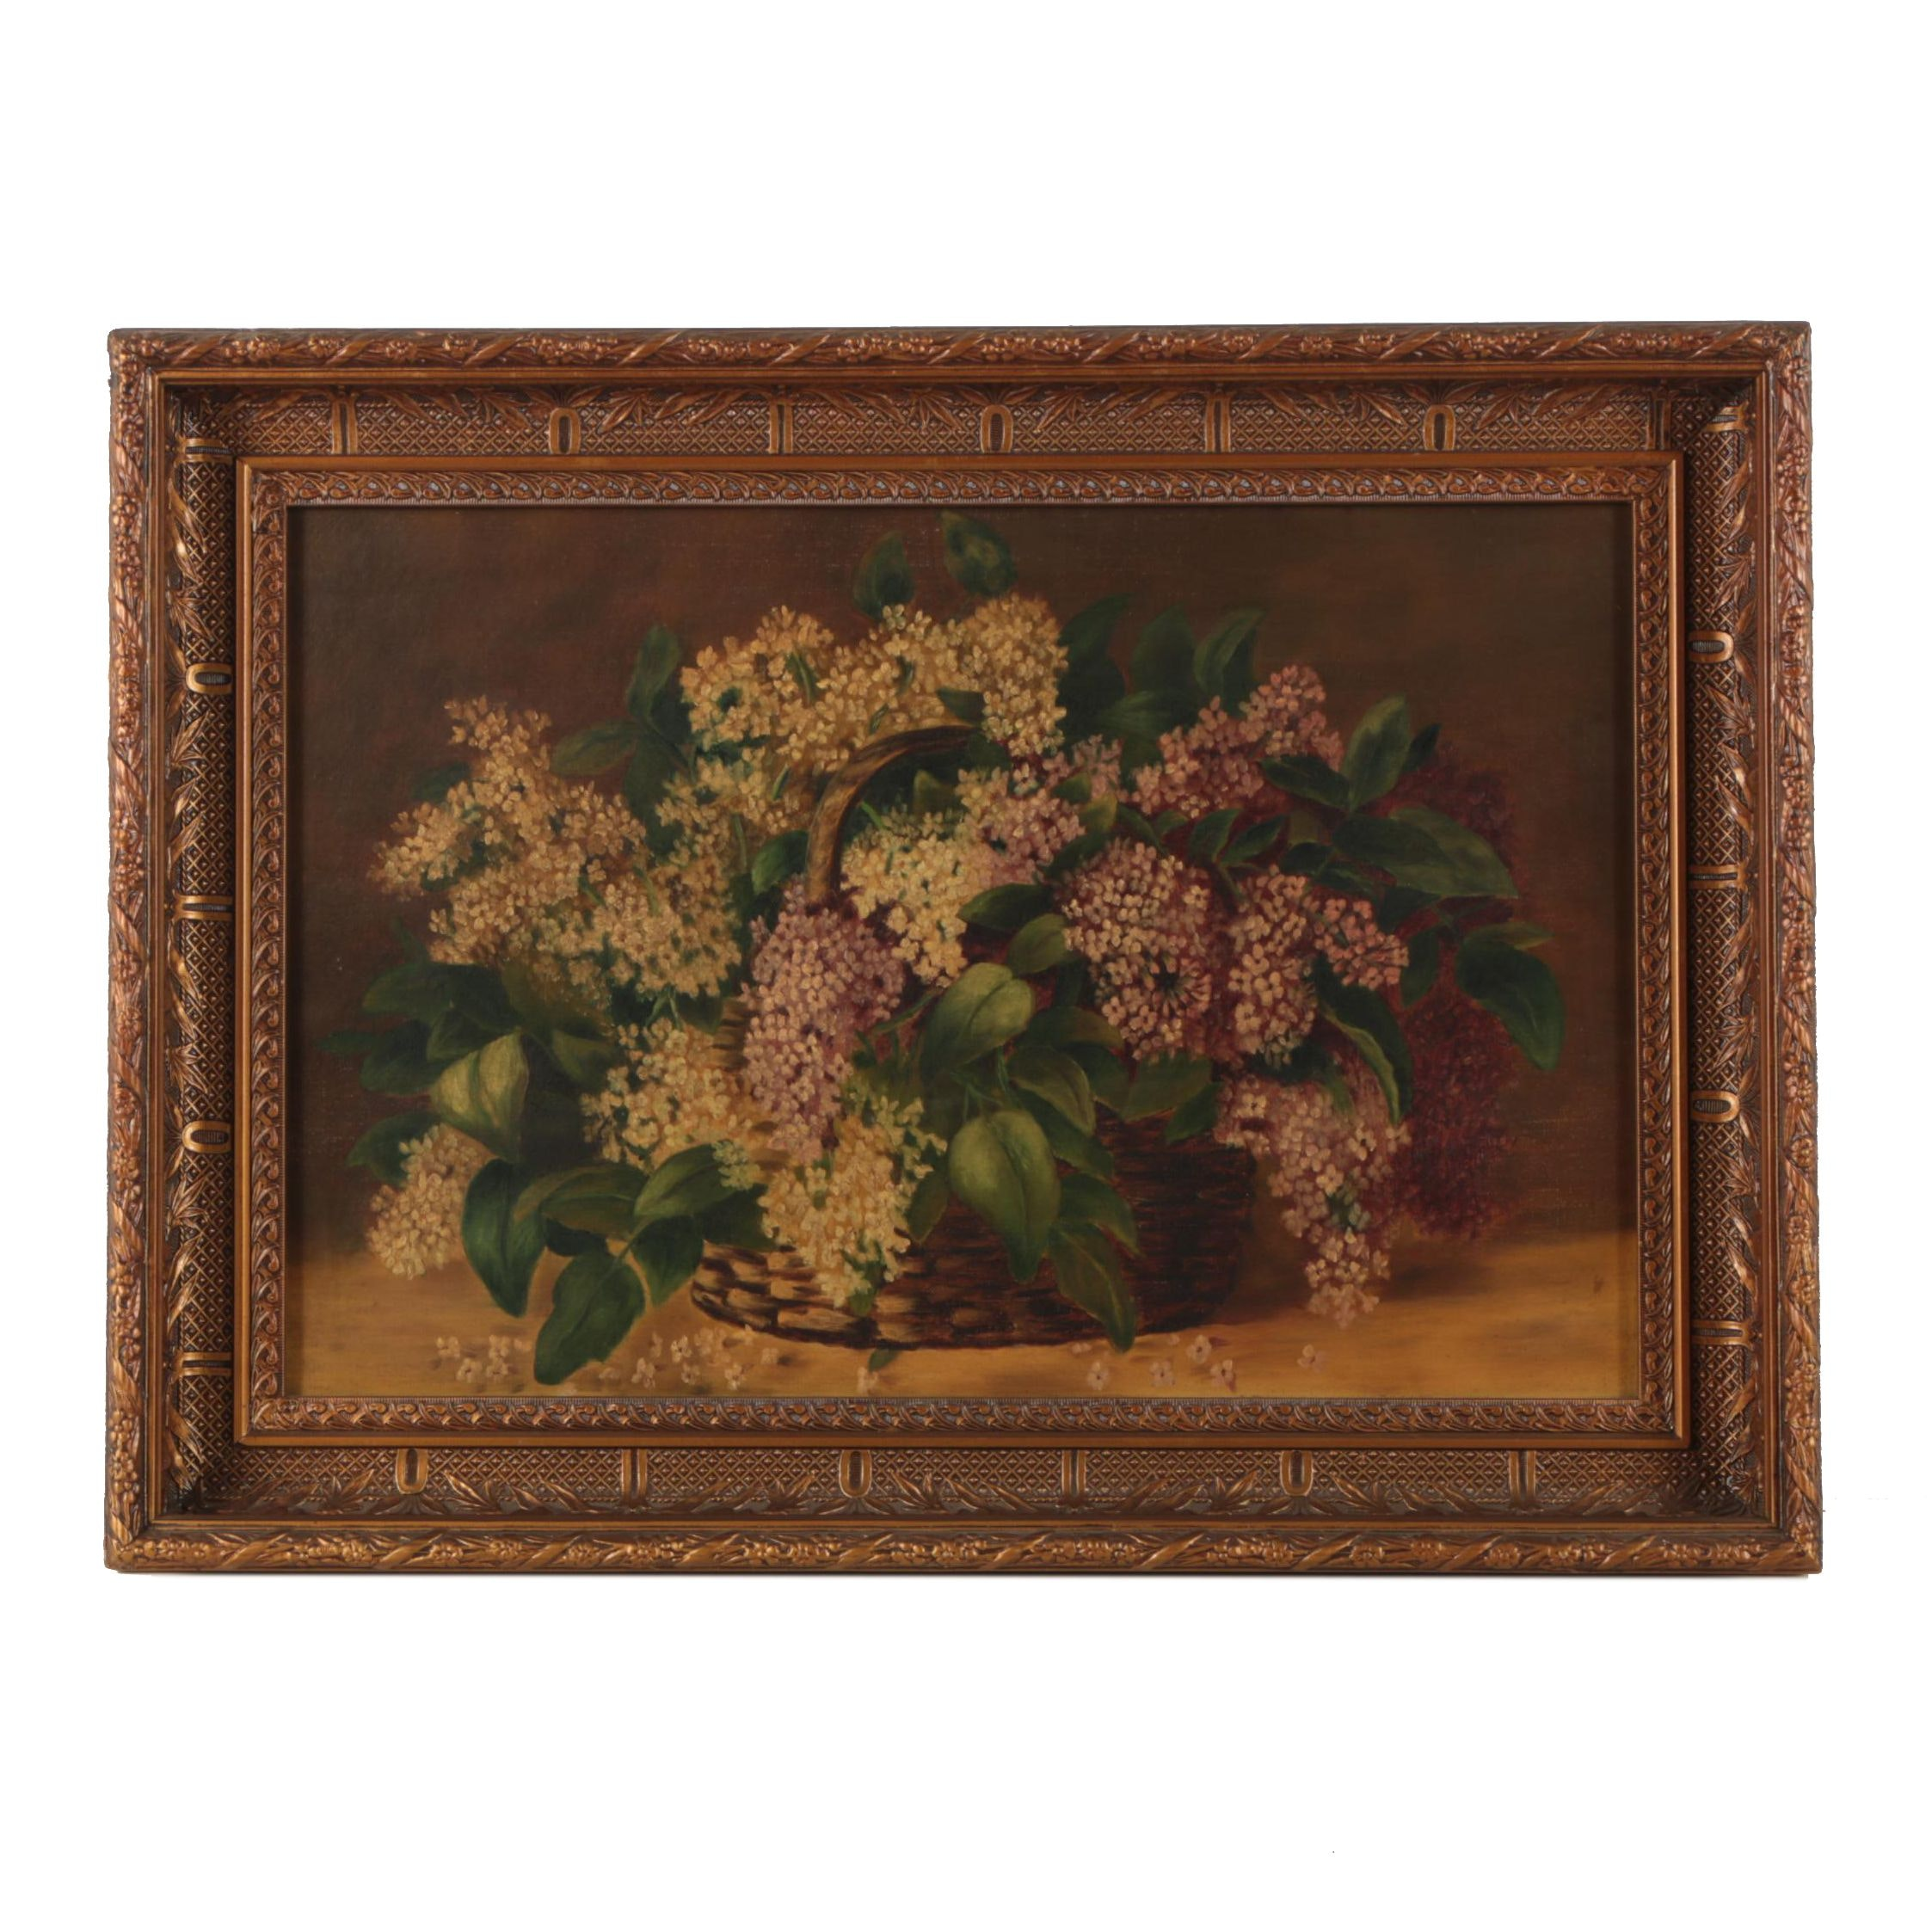 Antique Oil Painting of a Floral Still Life with Lilacs